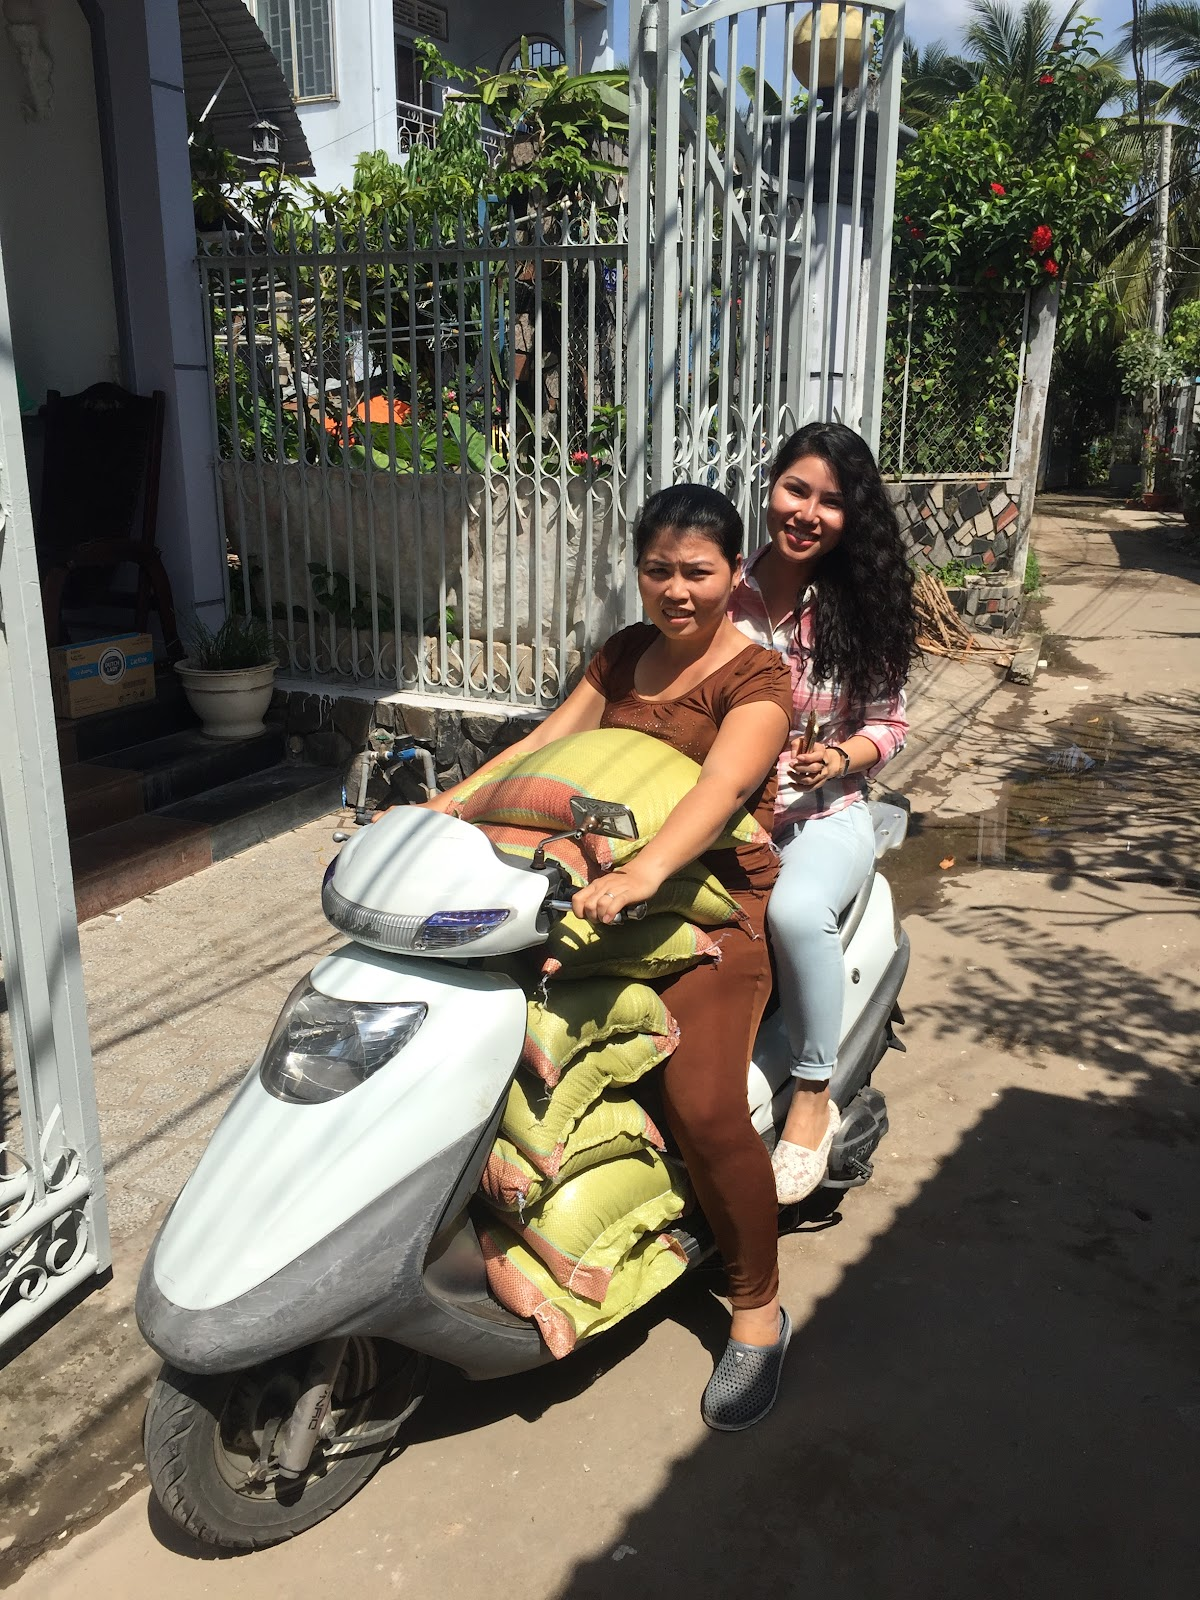 Female Riders carrying sacks on their motorcycle